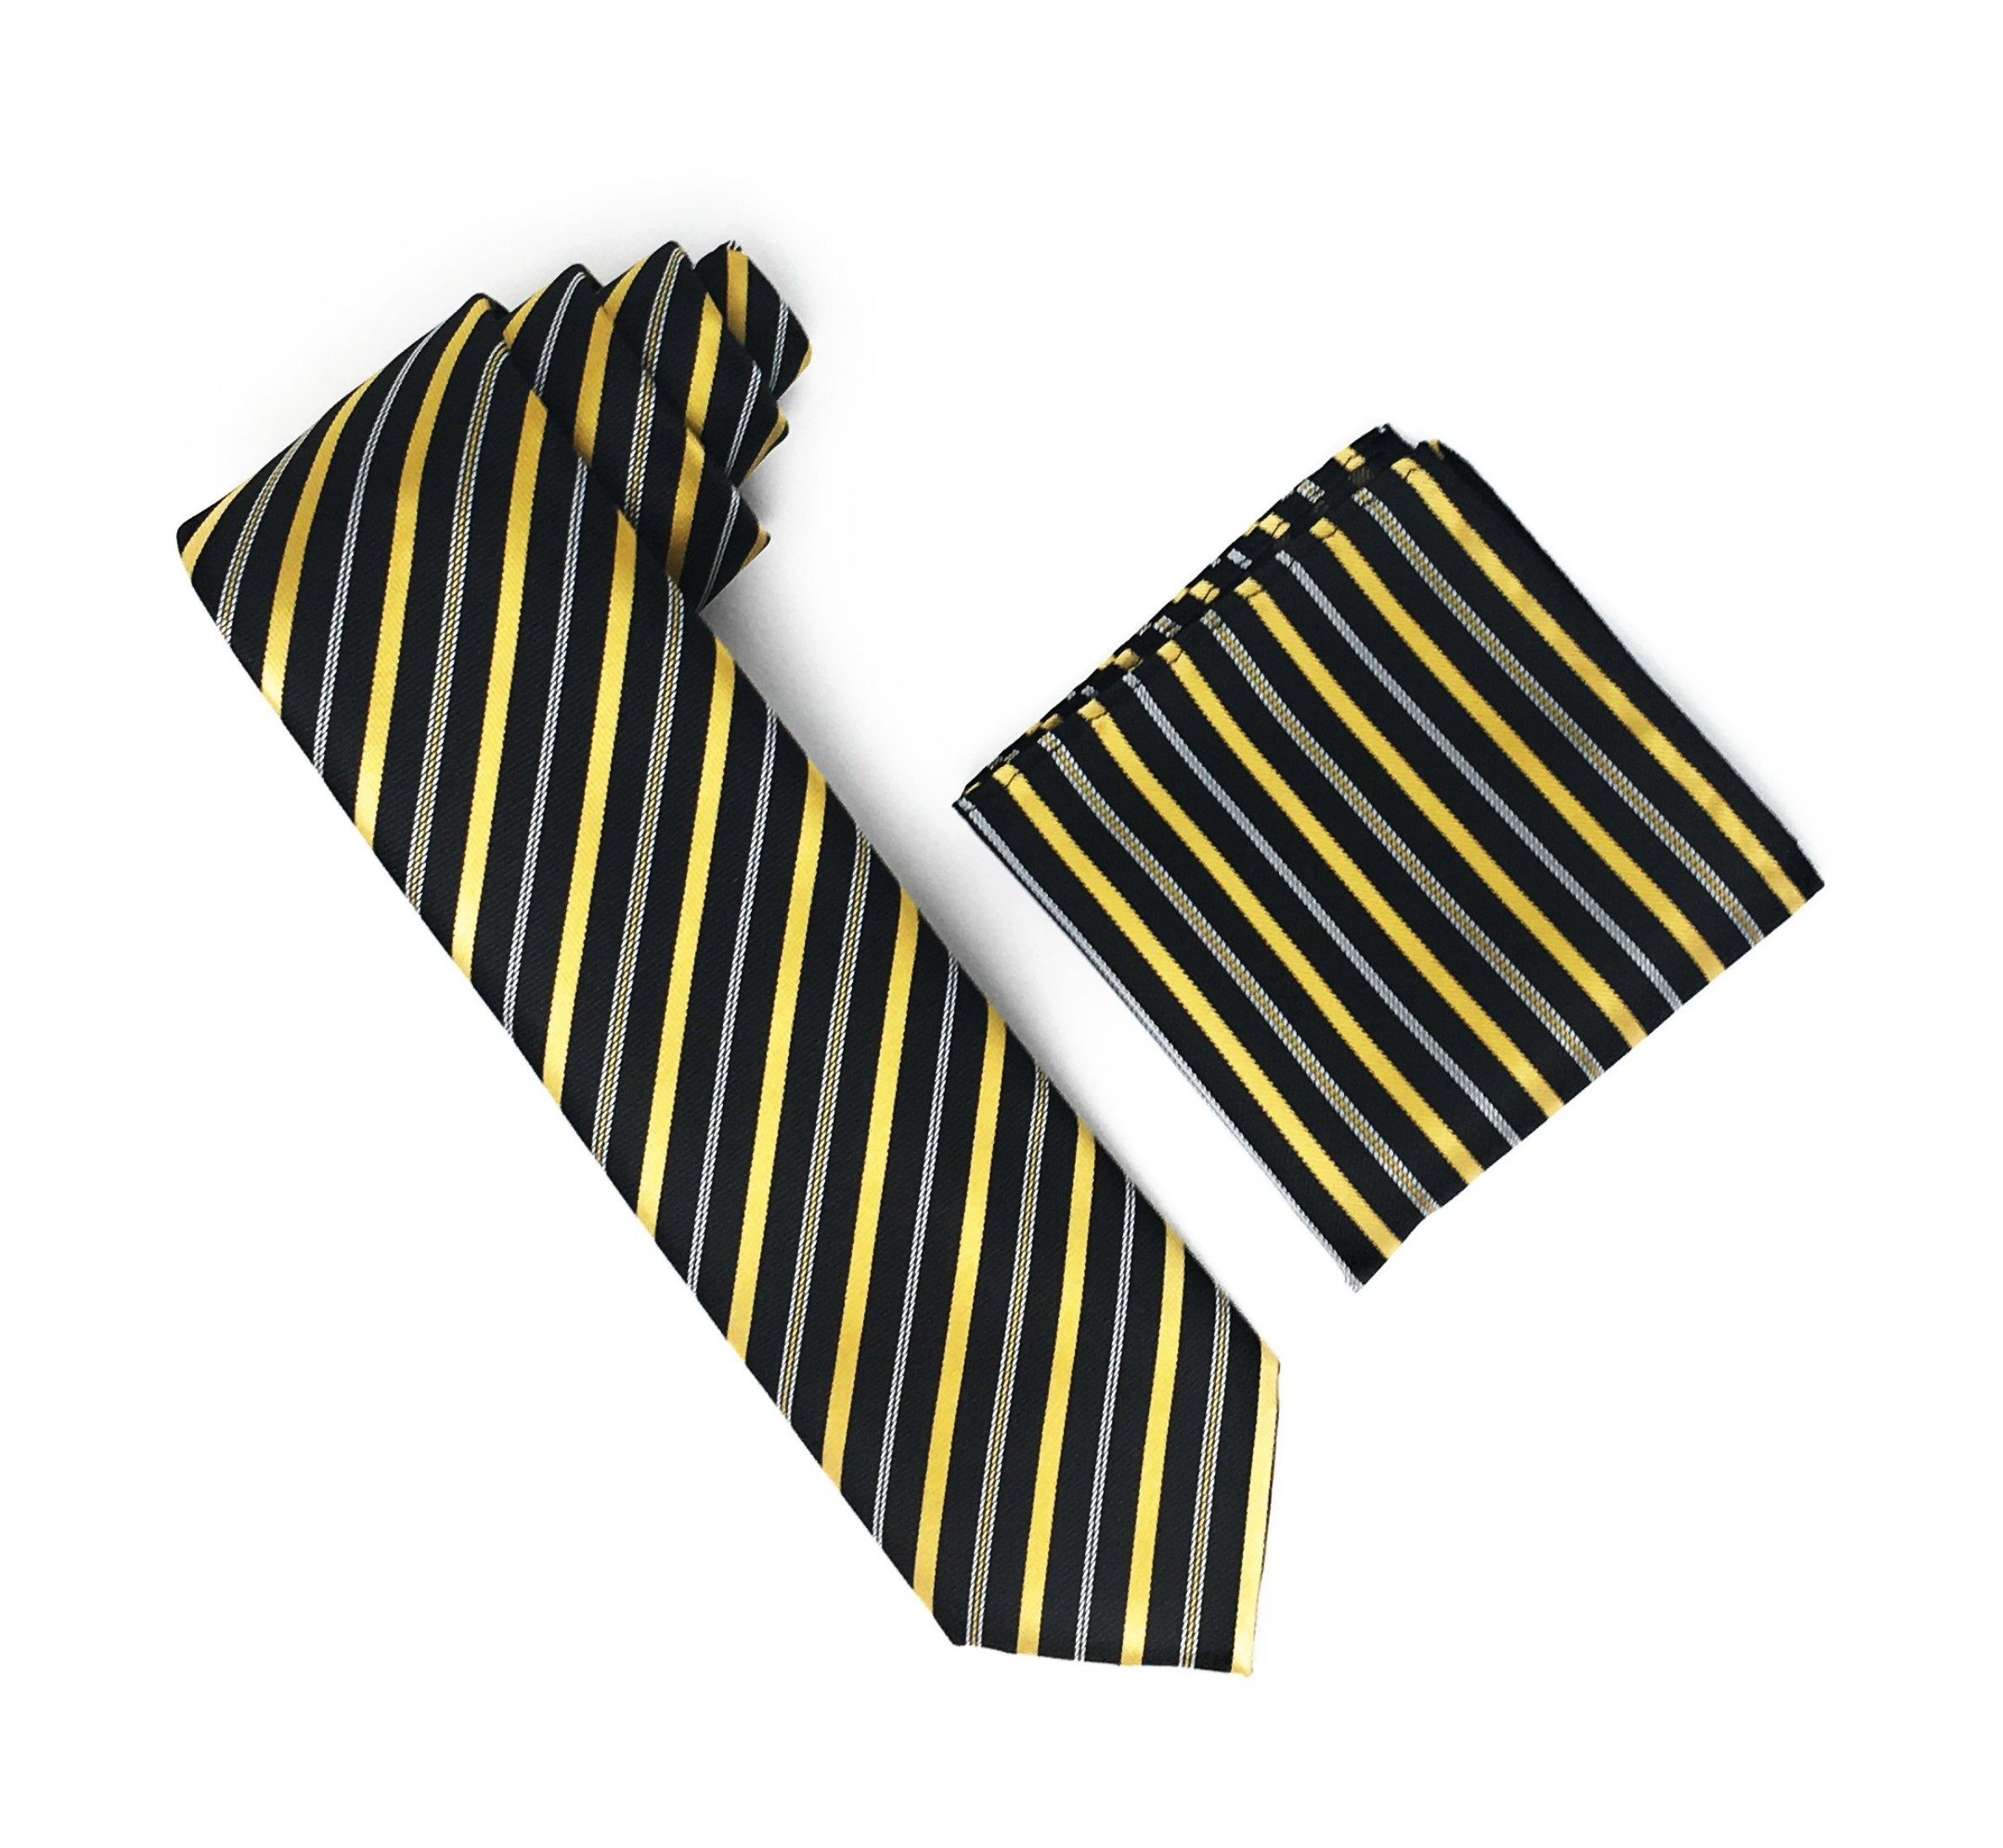 216013418b9e WTH605_Black_Gold_Silver_Stripped_Silk_Tie_With_Matching_Square_39e03f6e-7548-4e3e-bf75-e9957a0b9044.JPG?v=1548994736